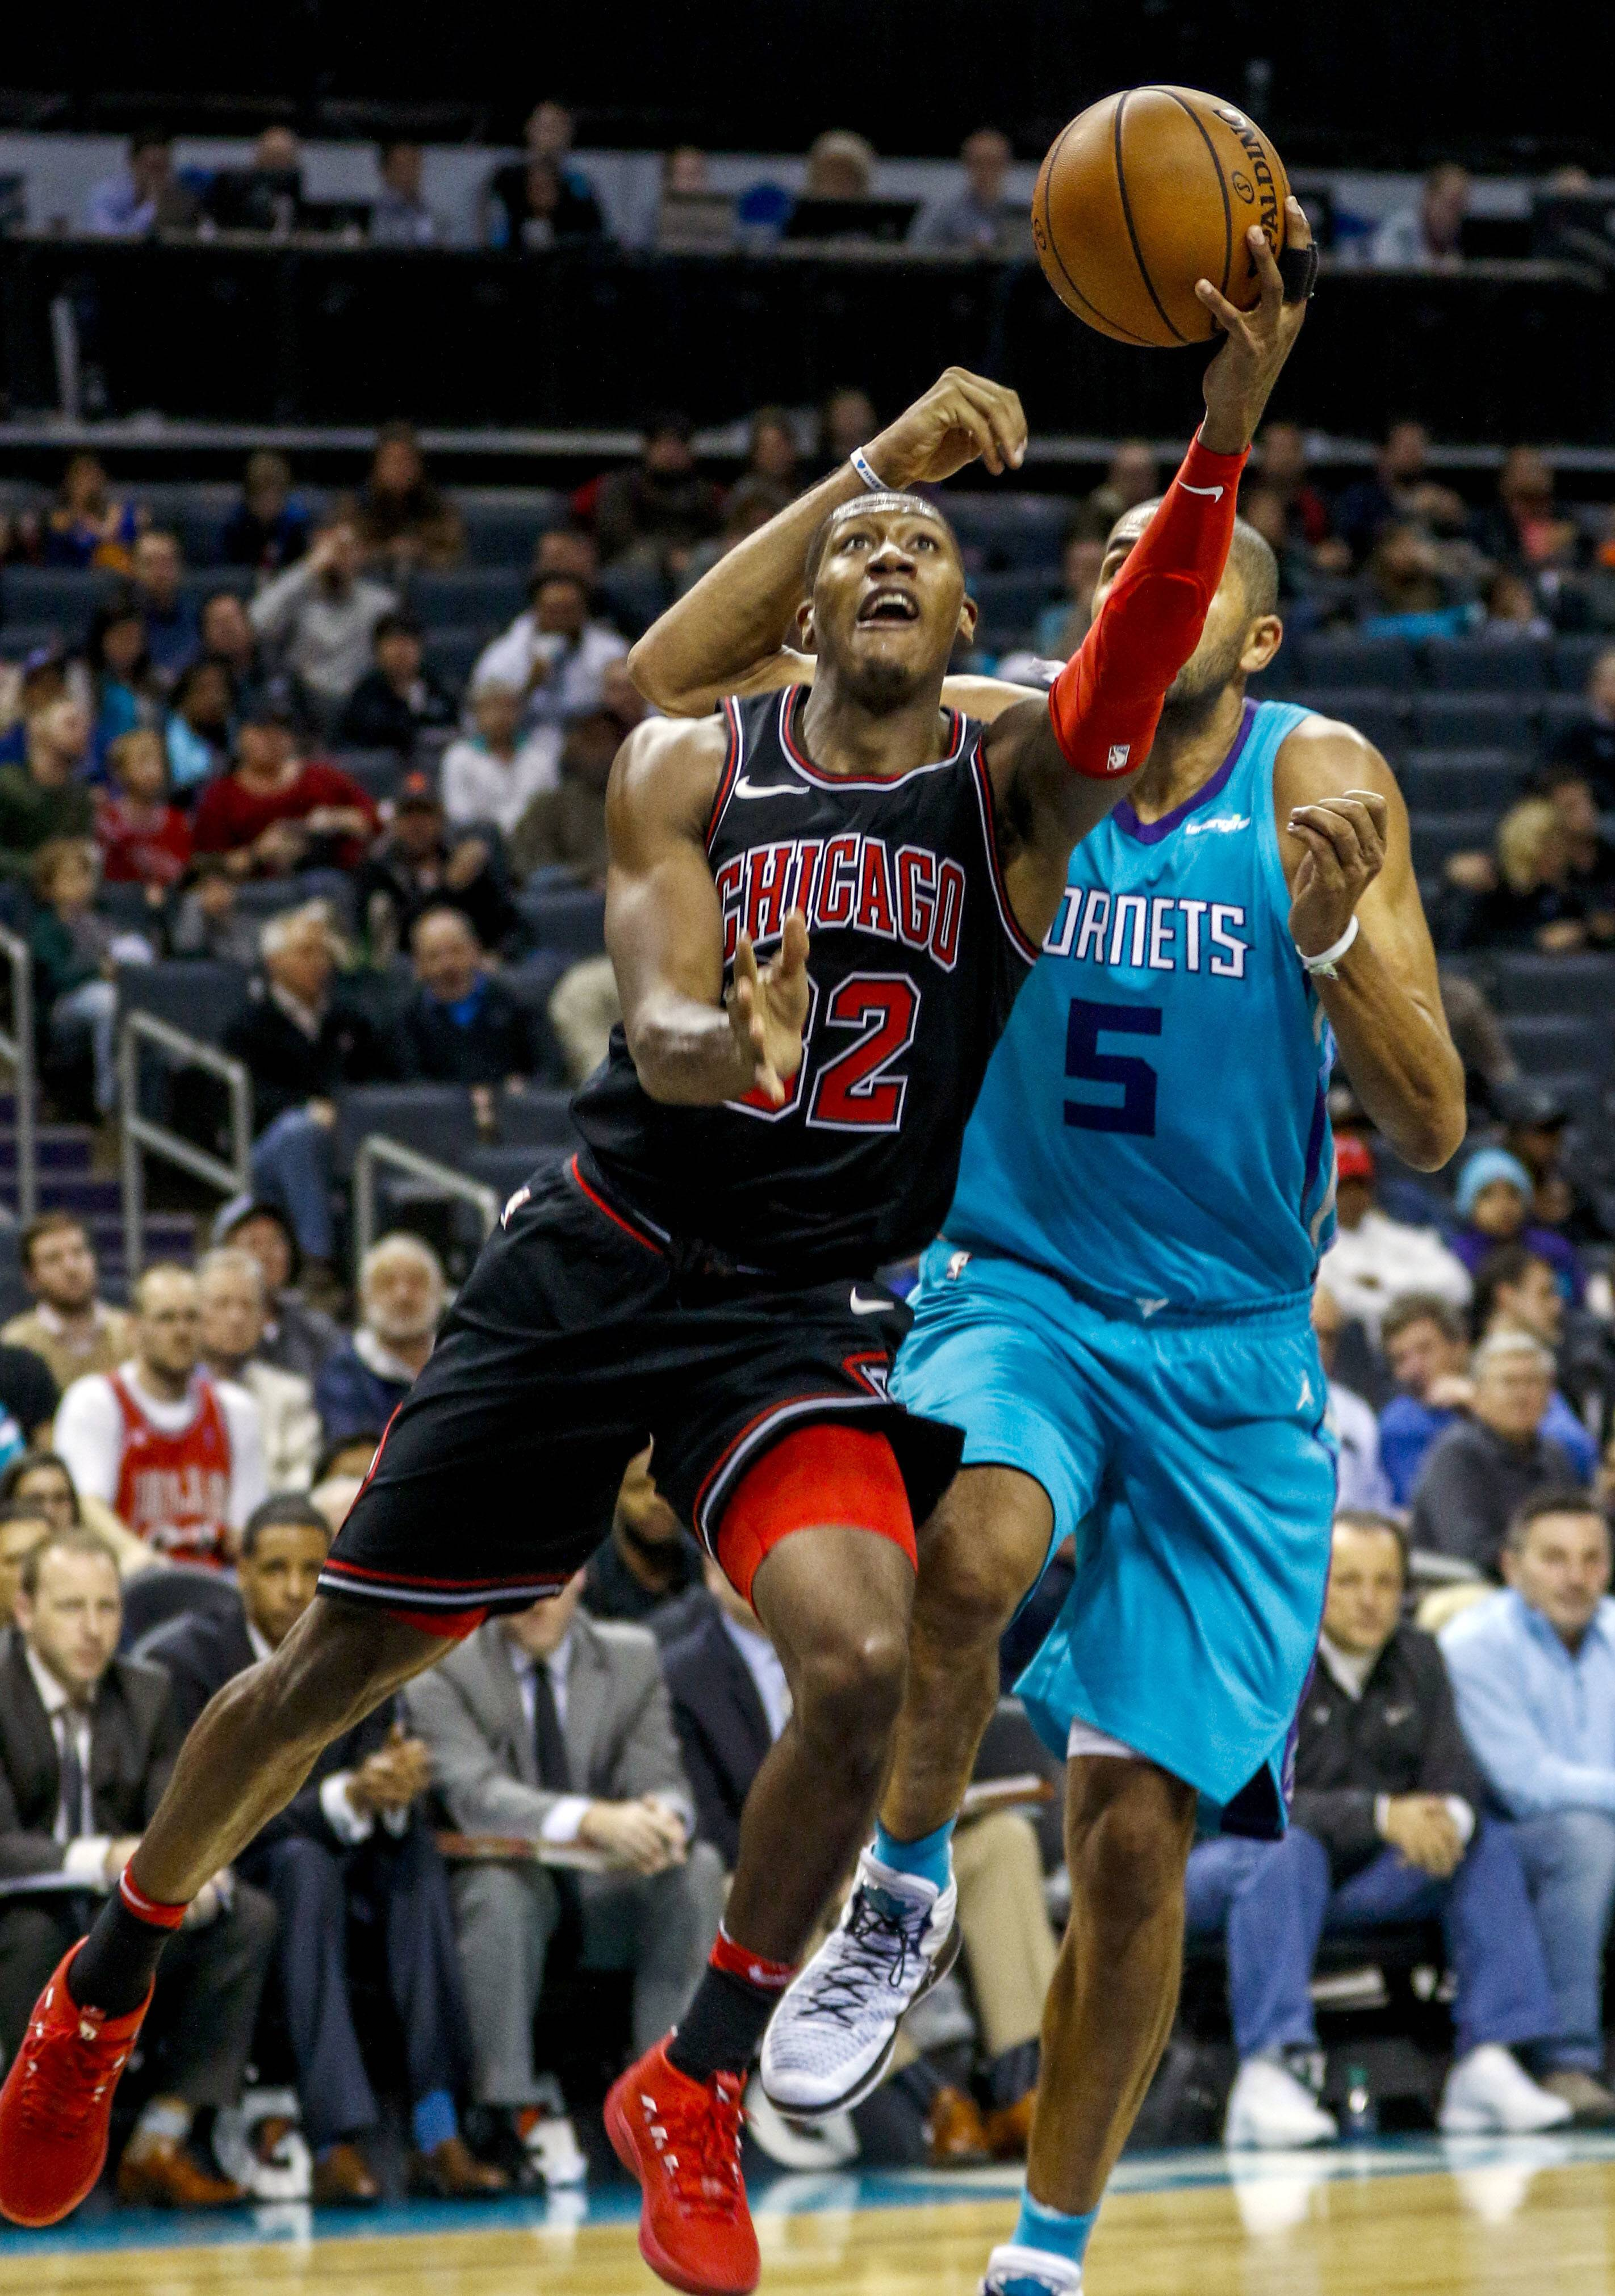 Chicago Bulls guard Kris Dunn, left, drives to the basket past Charlotte Hornets guard Nicolas Batum in the second half in Charlotte, N.C., Friday. Lauri Markkanen scored 24 points and Dunn added 20 as the Bulls ended their 10-game losing streak with a 119-111 overtime victory at Charlotte. Nikola Mirotic made his season debut and scored 6 points.